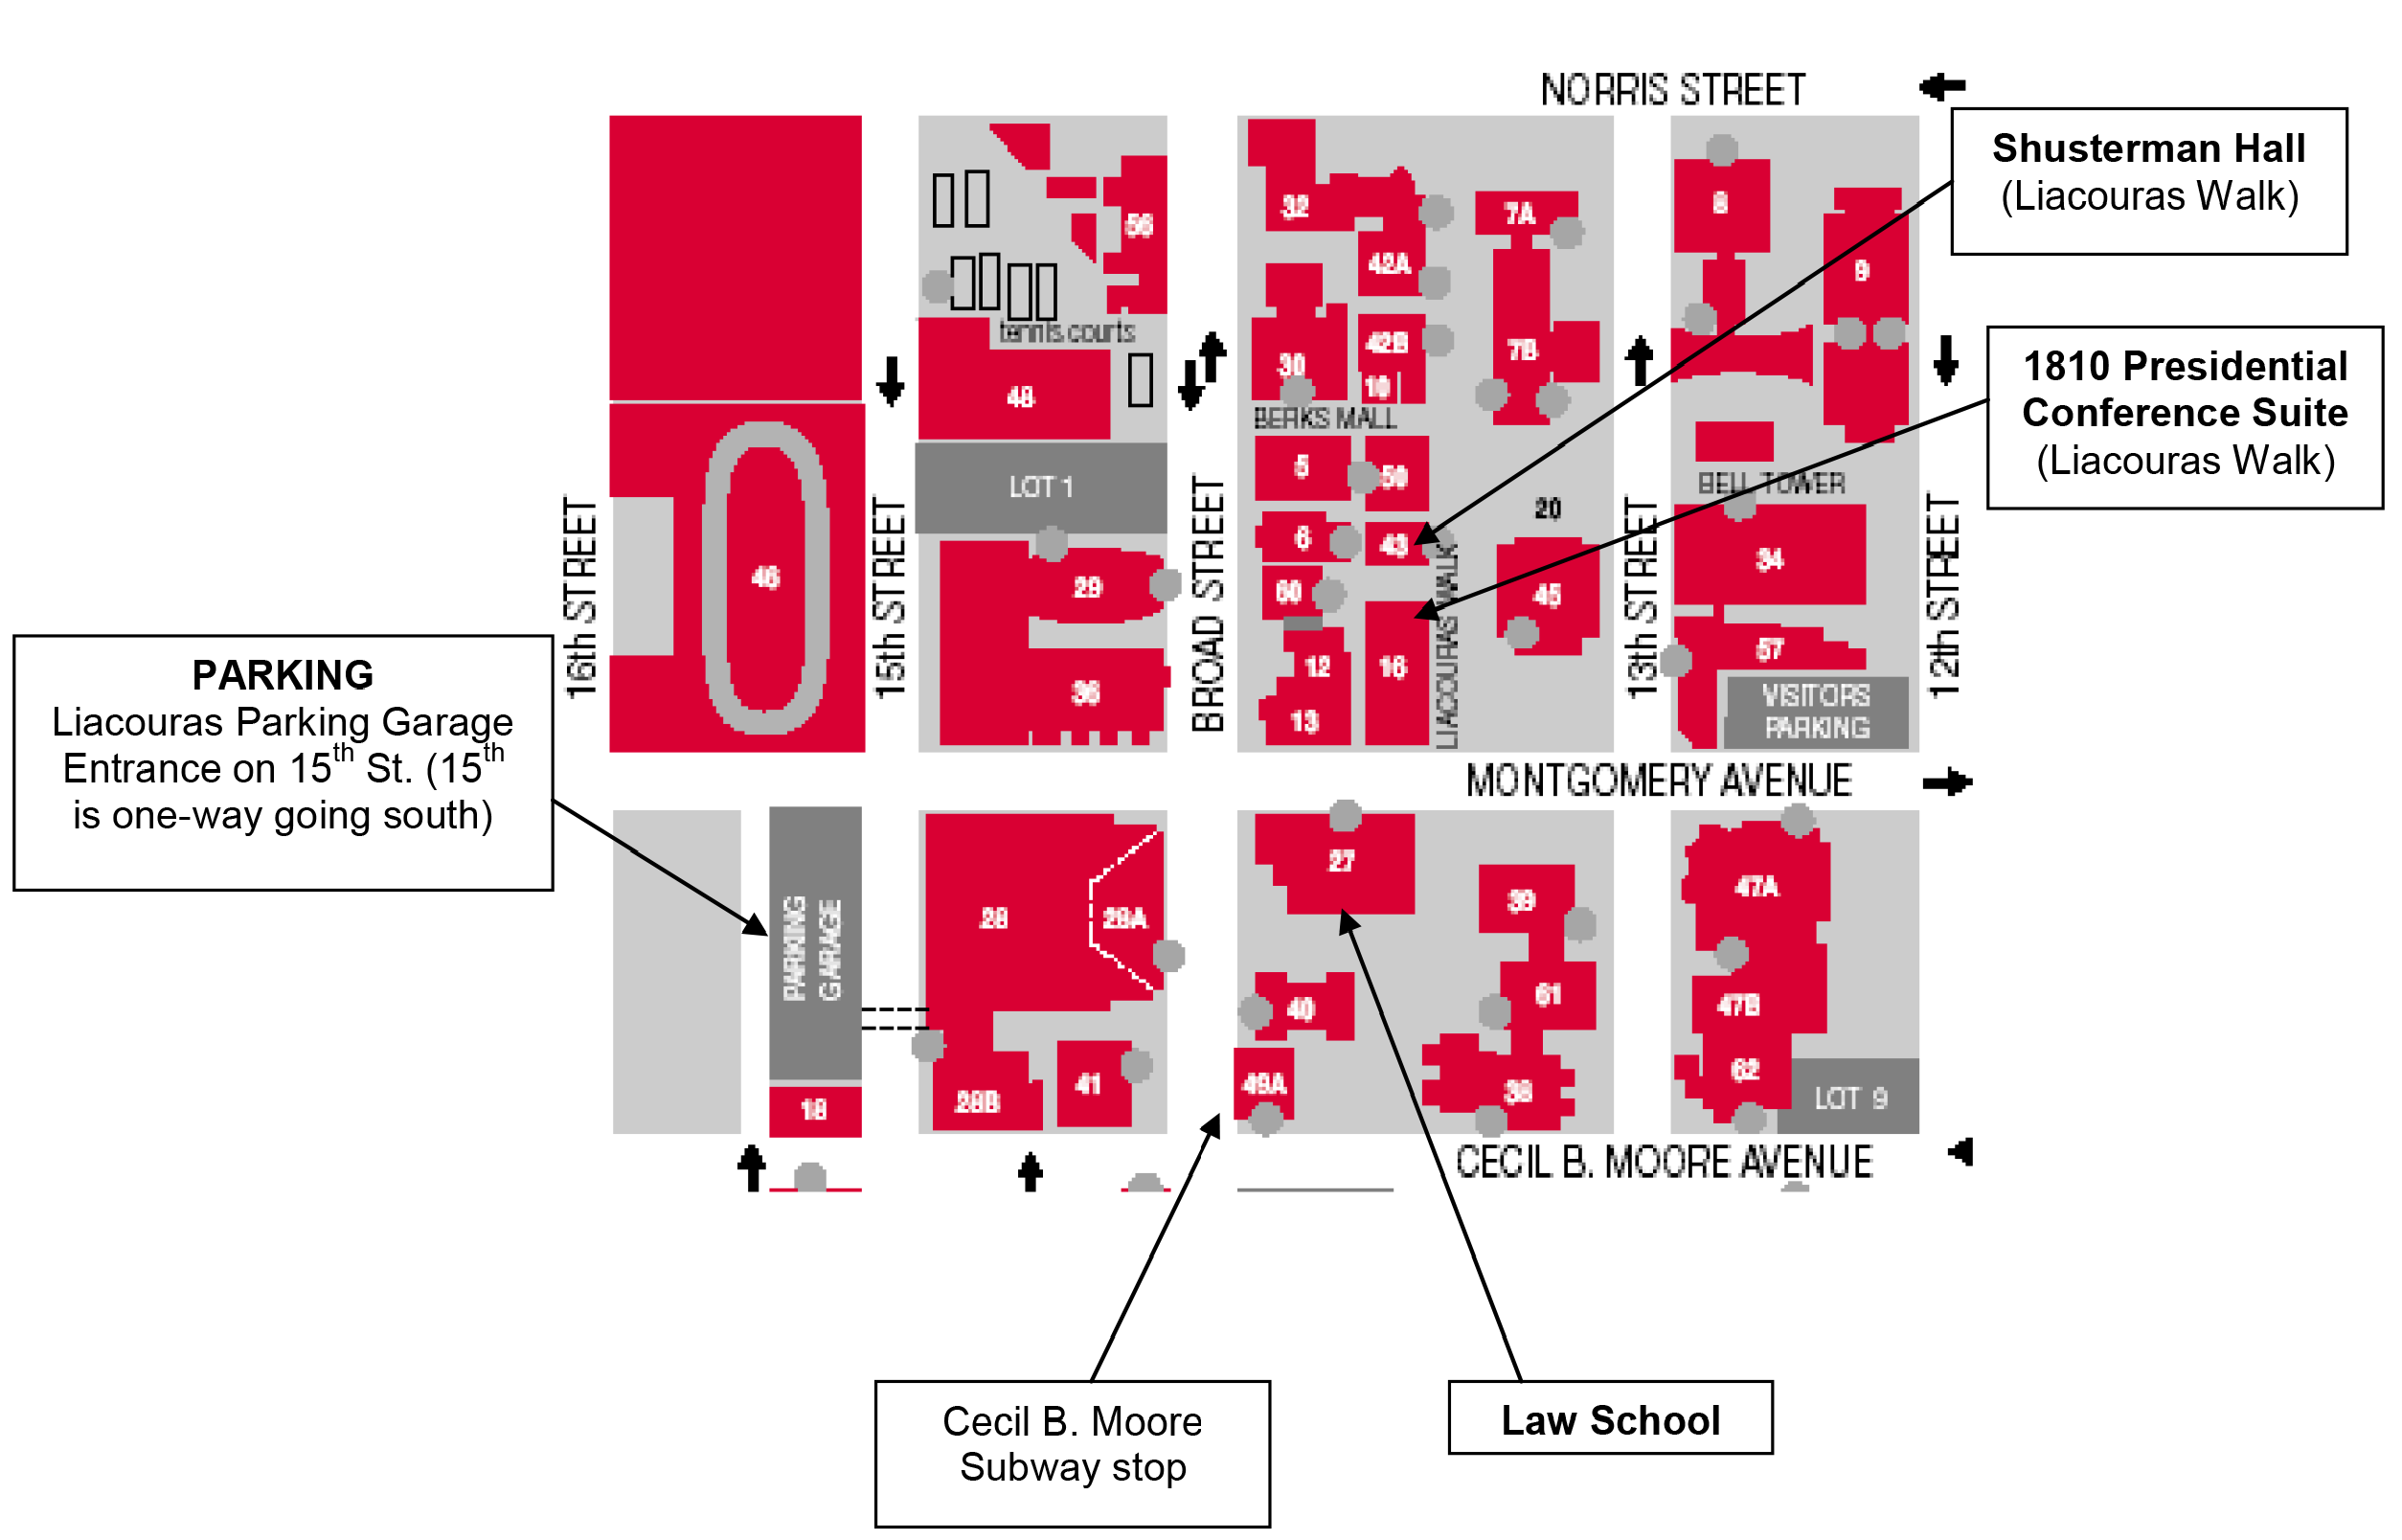 temple university main campus map Directions A Festschrift In Honor Of Professor Henry Richardson temple university main campus map